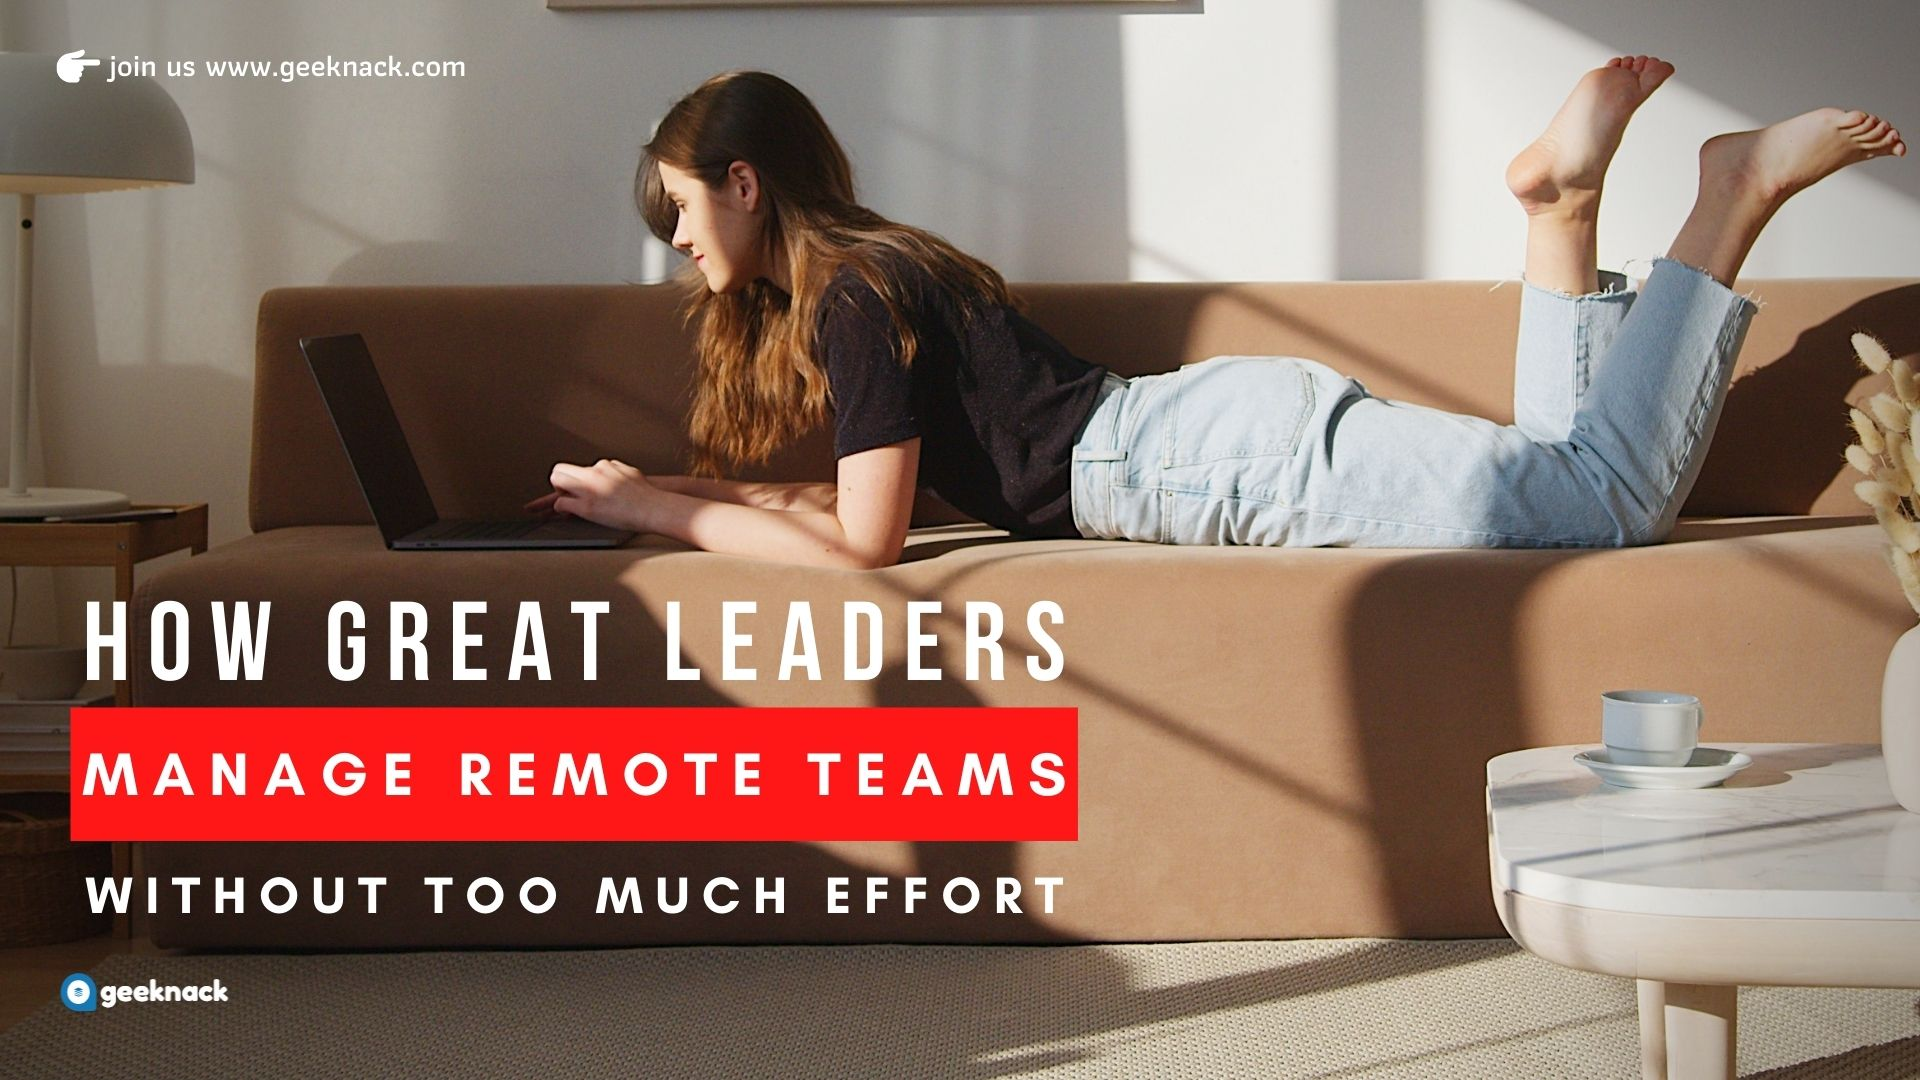 How Great Leaders Manage Remote Teams Without Too Much Effort